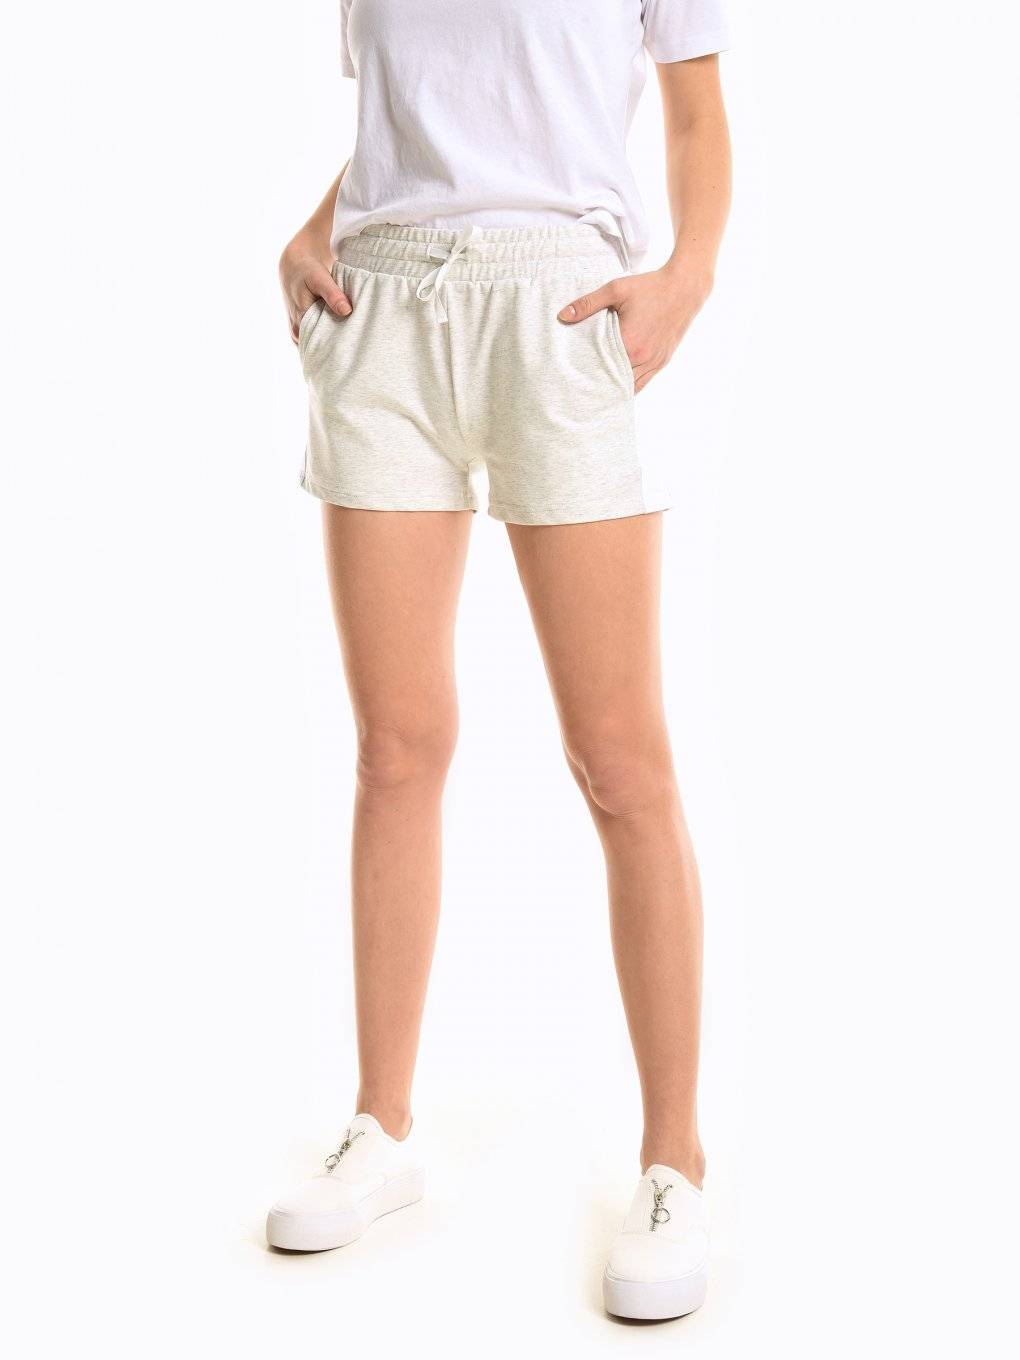 Sweatshorts with side panel